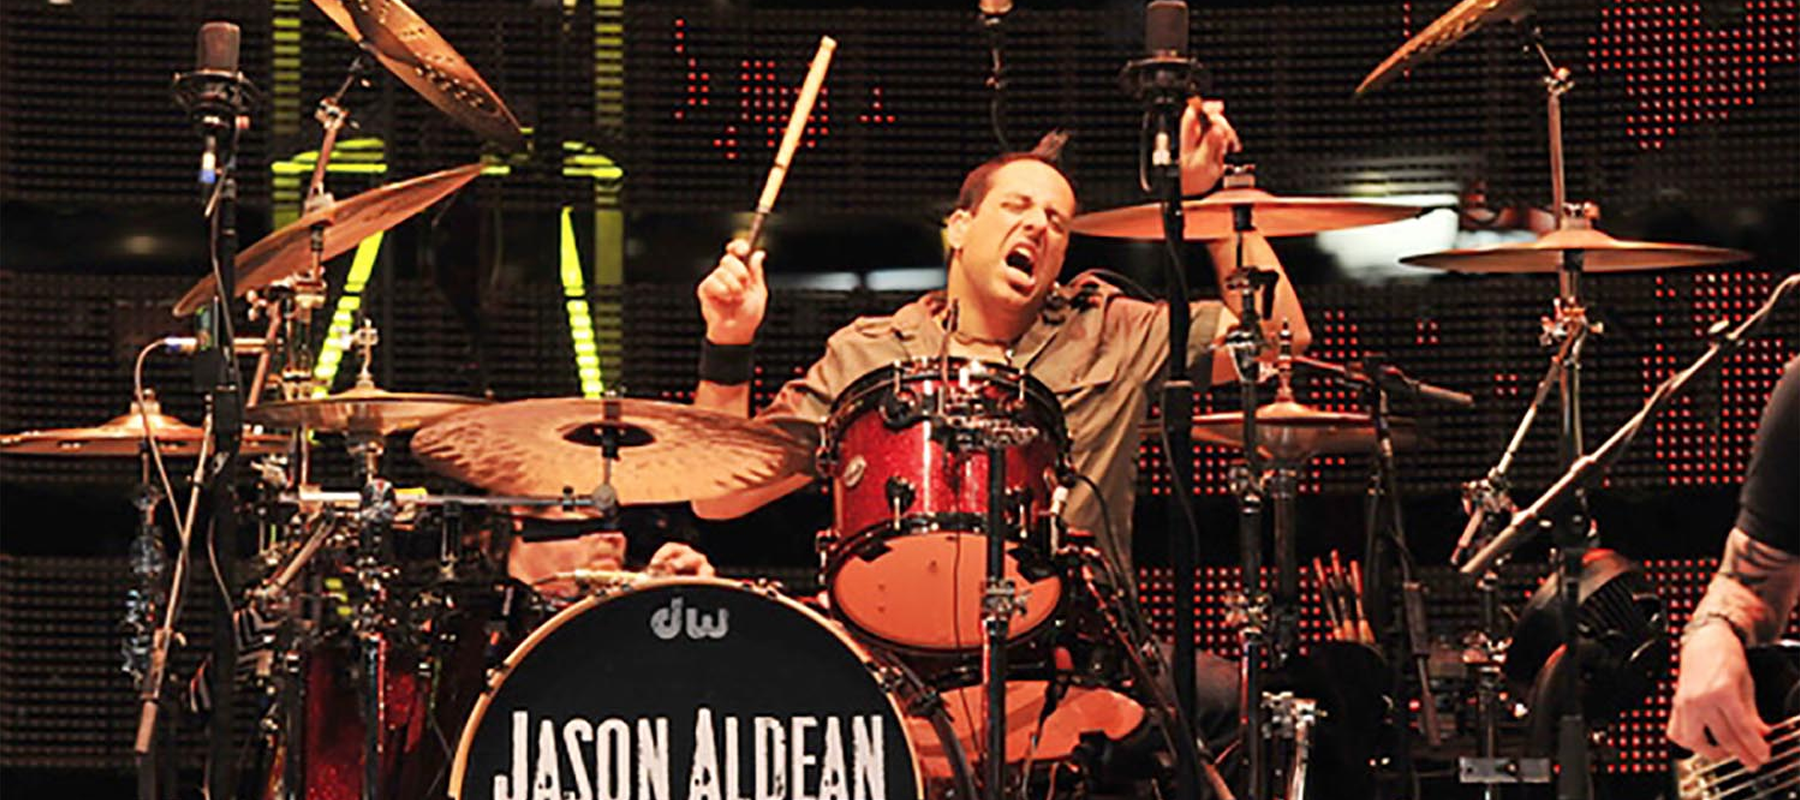 D.O'B. Sound Pro salutes our good friend Rich Redmond of Jason Aldean Band  (VIDEO)